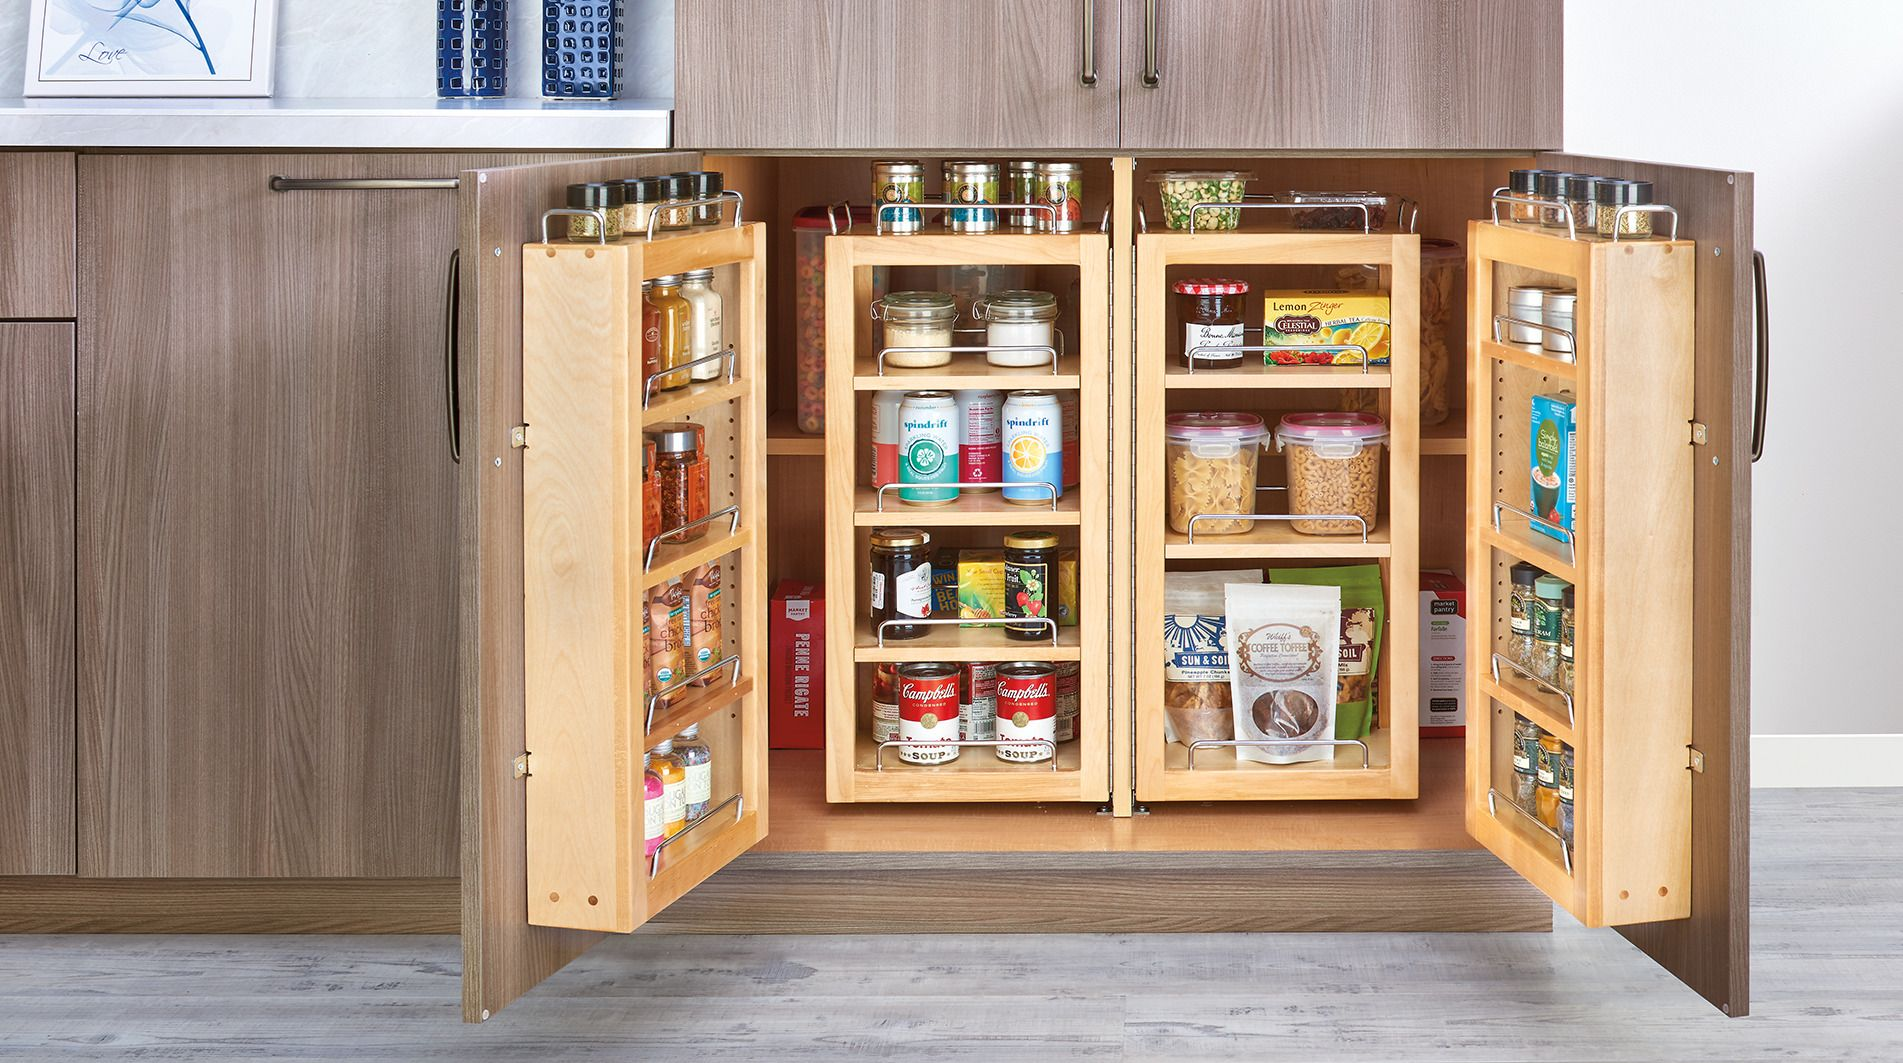 7 Interior Organizers That Will Improve The Utility Of Your Cabinets Residential Products Online